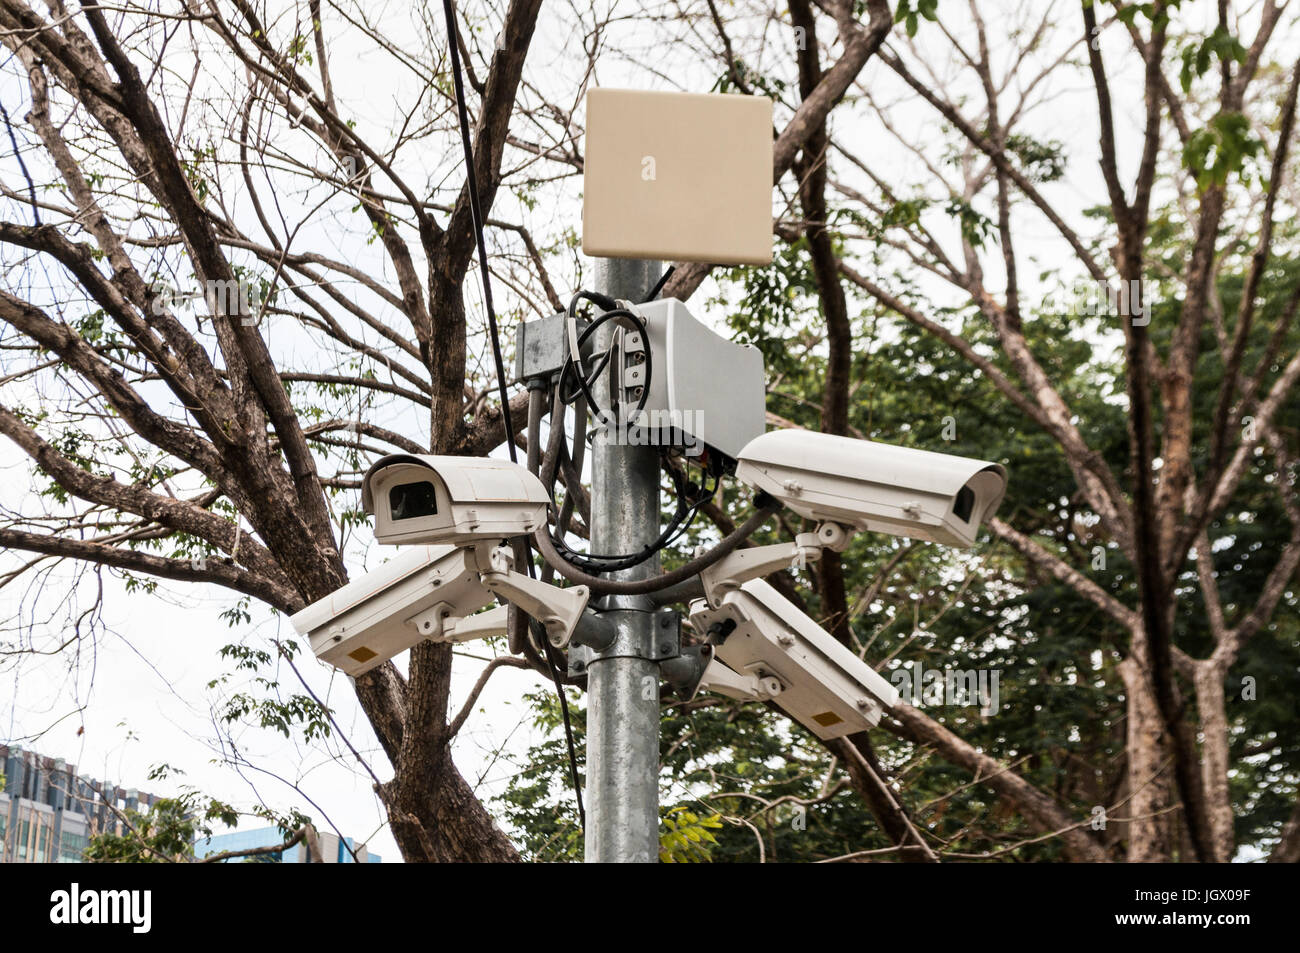 Four CCTV surveillance security cameras point in different directions in a park for public safety. - Stock Image